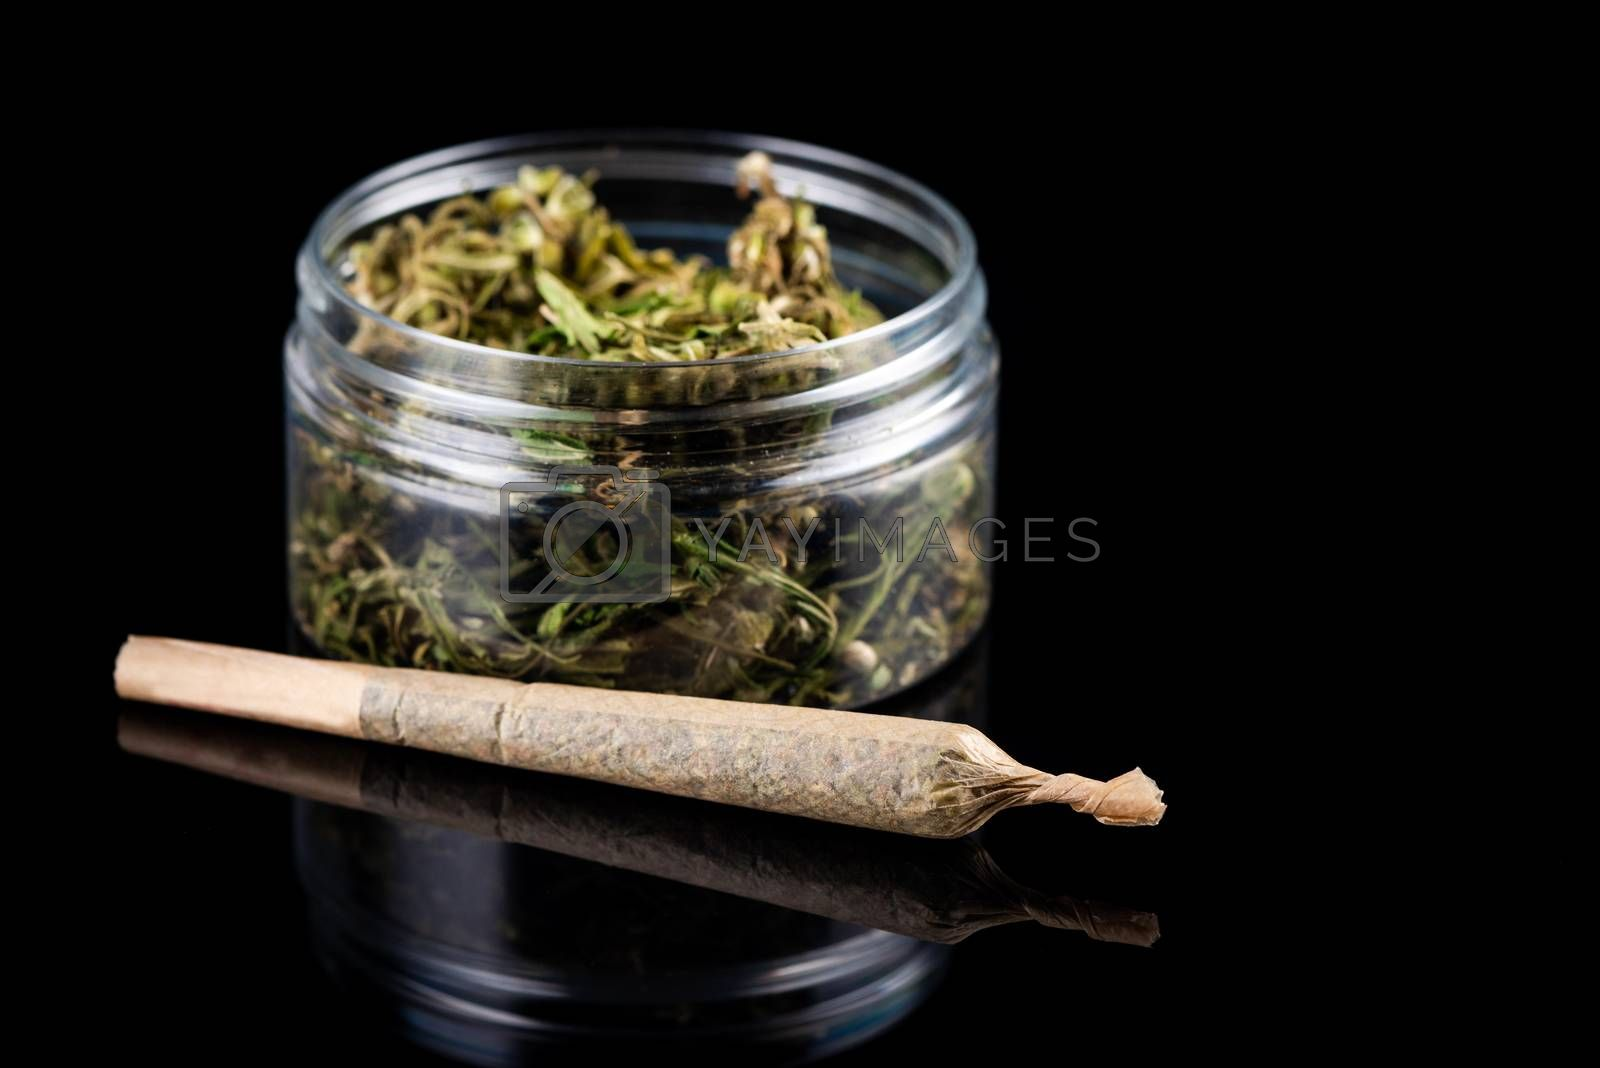 Recreational Prescription Medical Marijuana Joint and Cannabis Flower Buds in Jar.